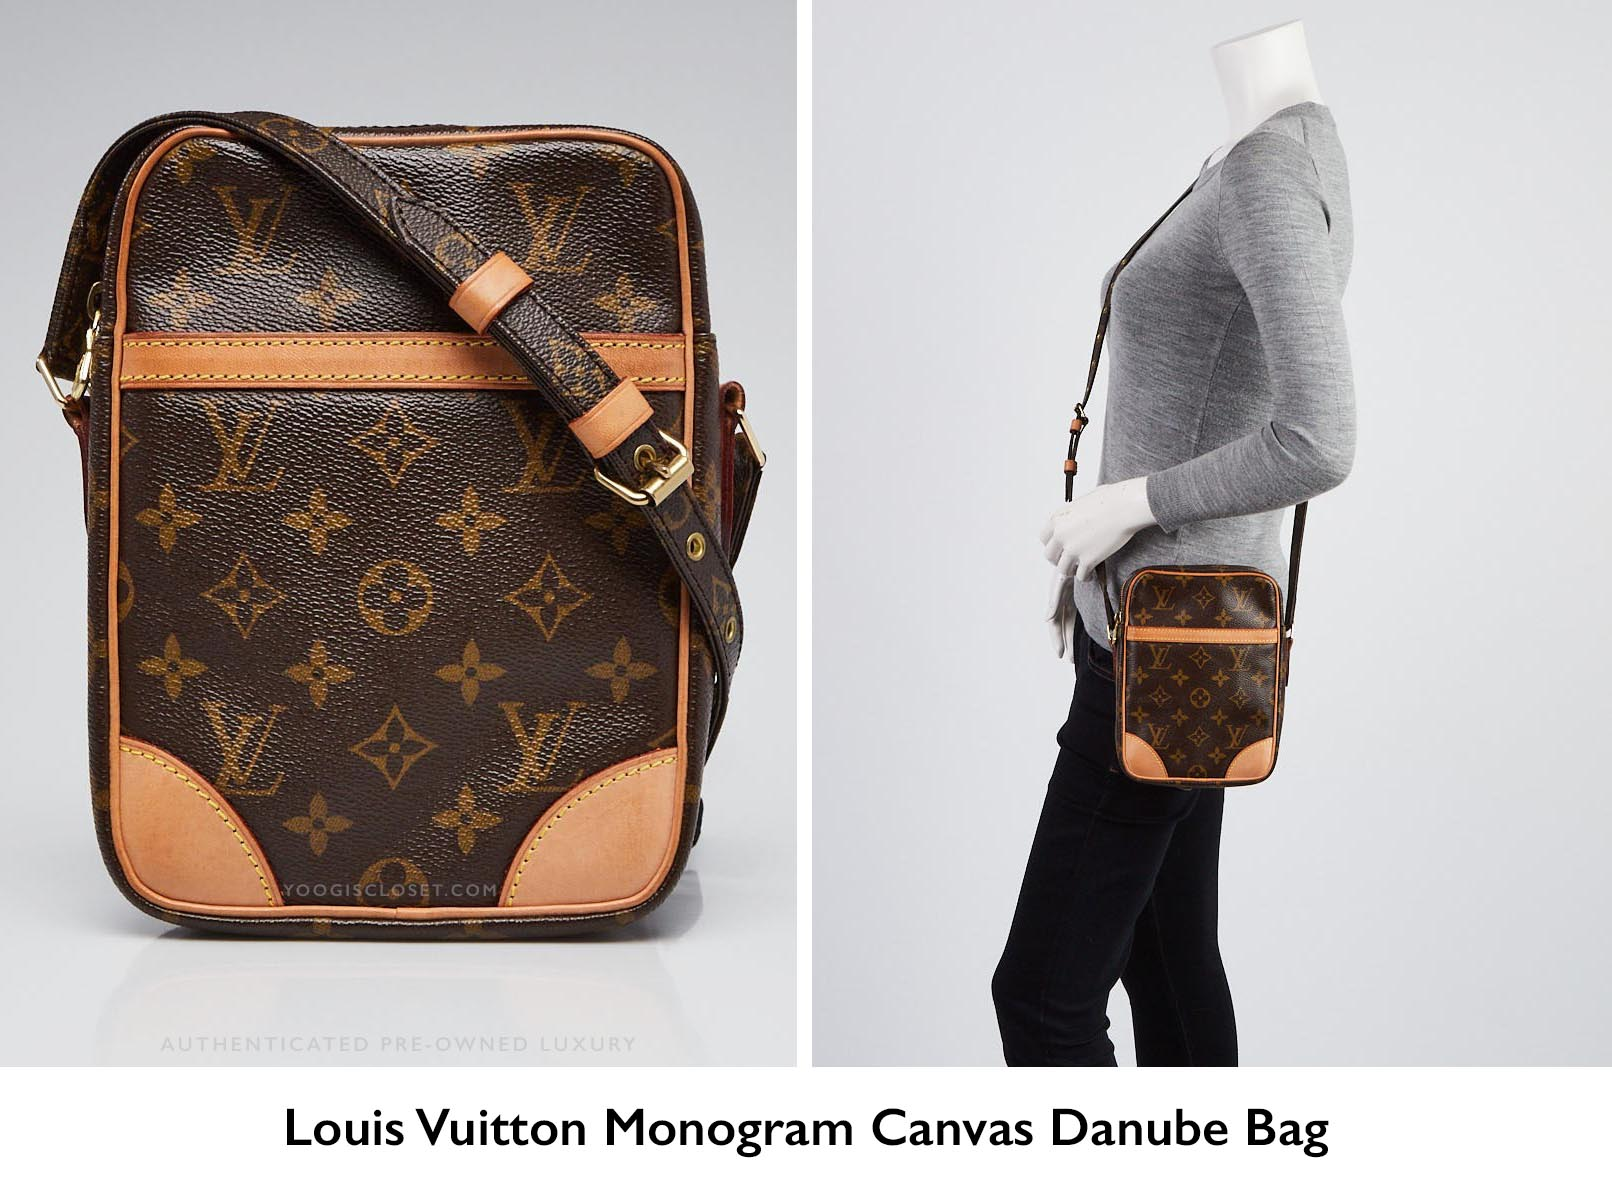 b00fcff40ad8 15 Most Popular Louis Vuitton Monogram Small Crossbody Bags ...